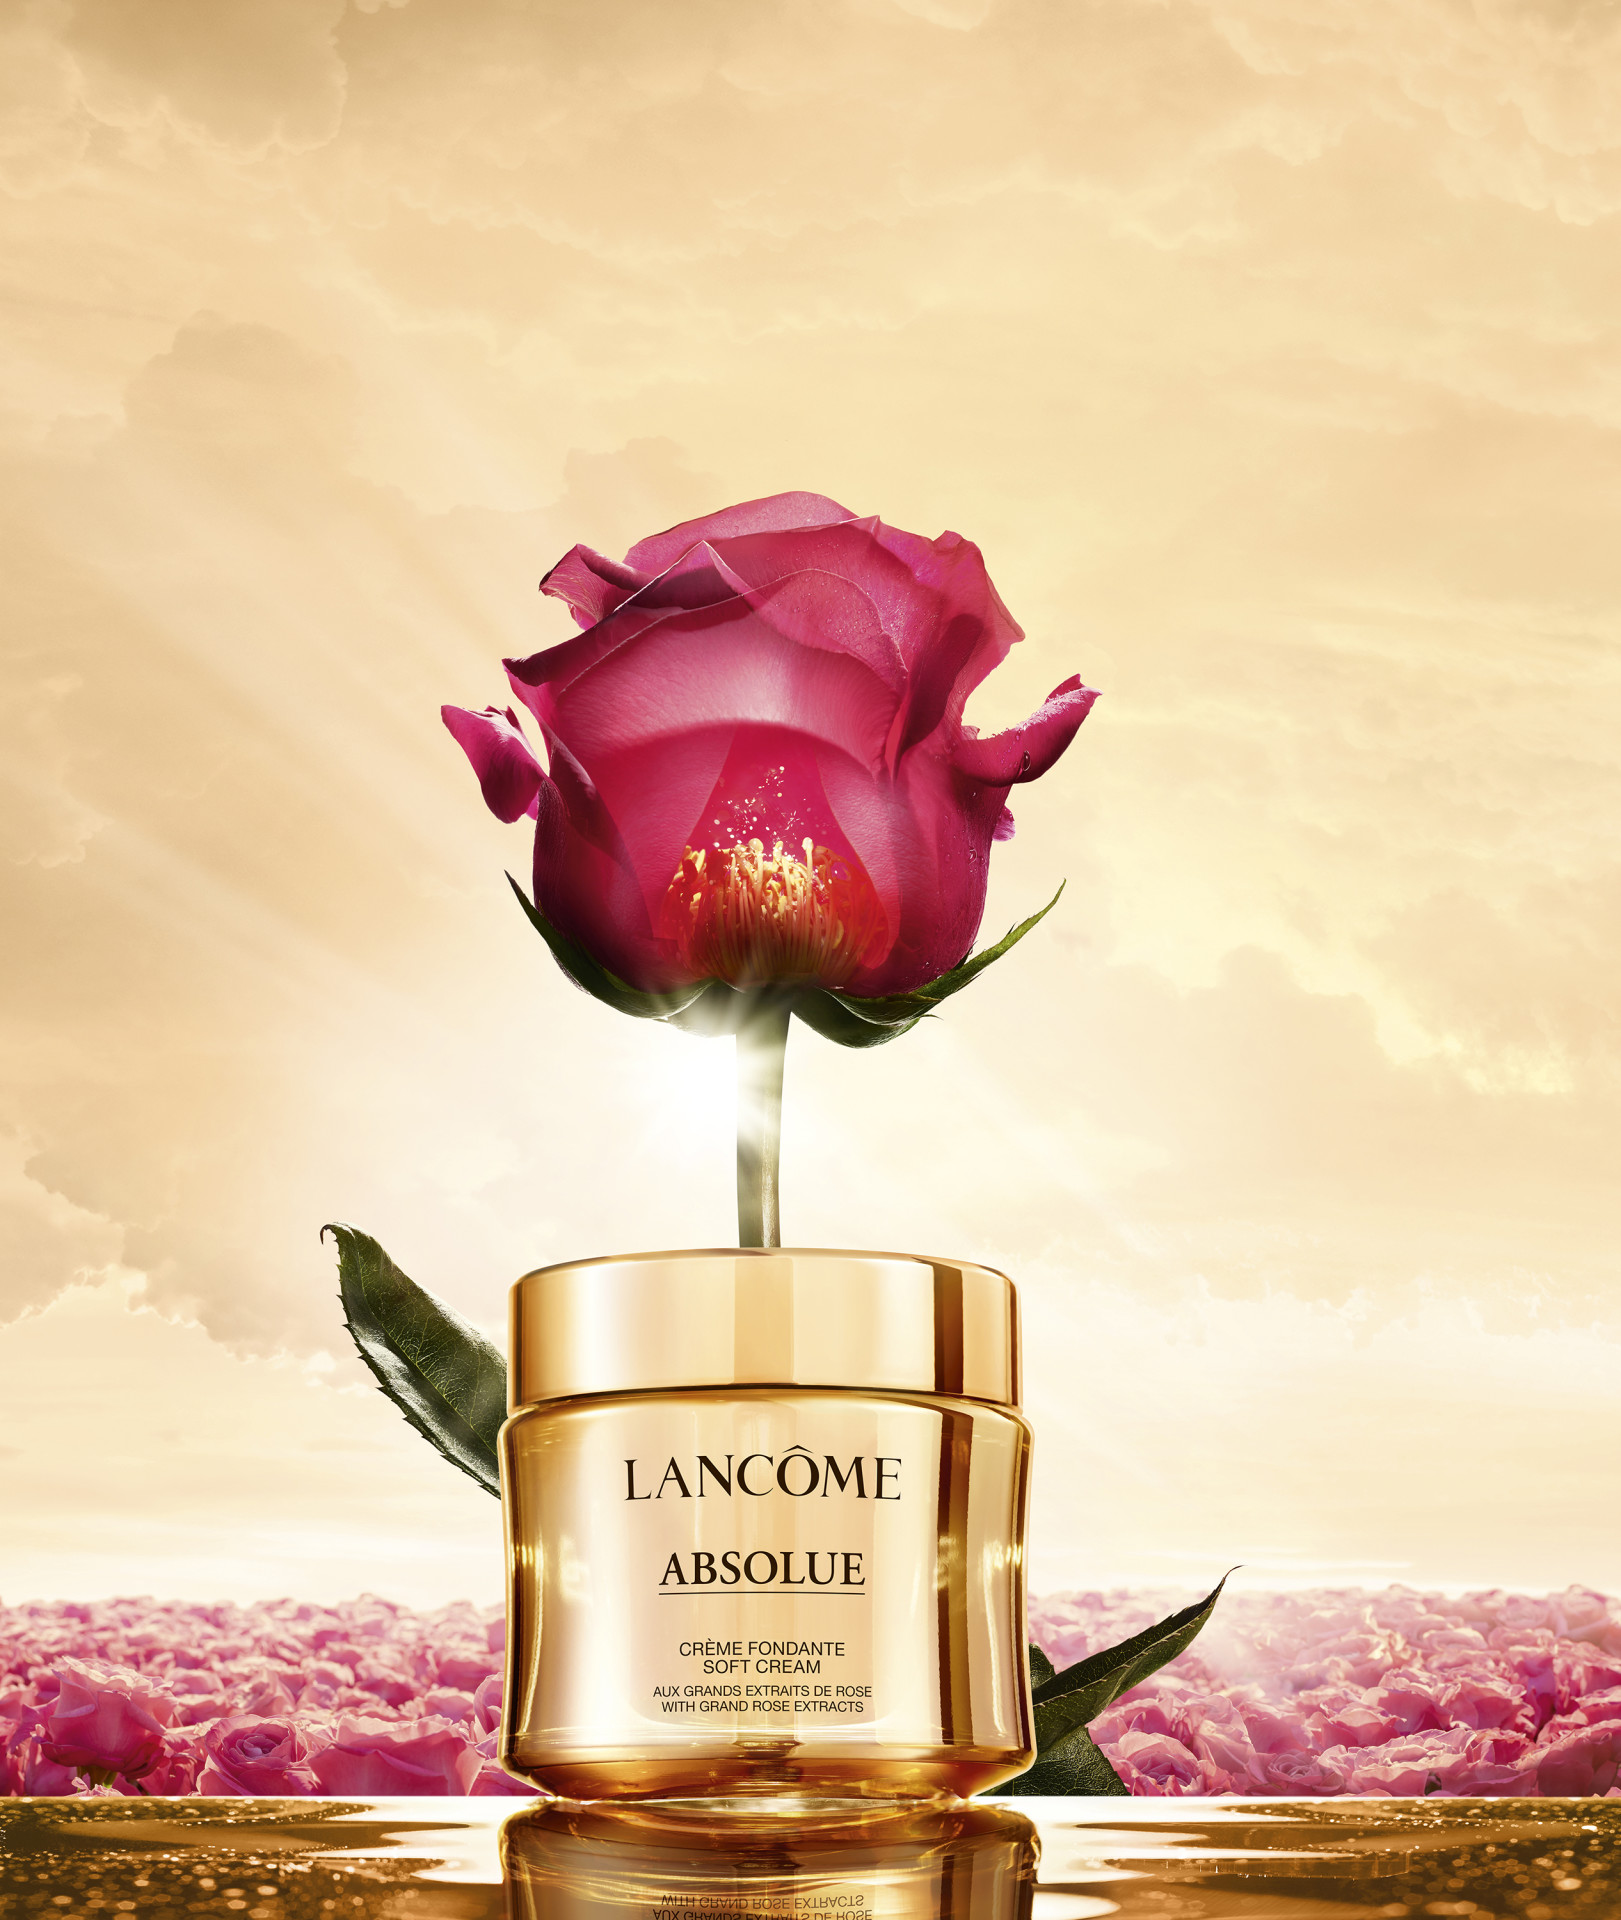 LANCOME ABSOLUE ROSE SP 9 110 CD